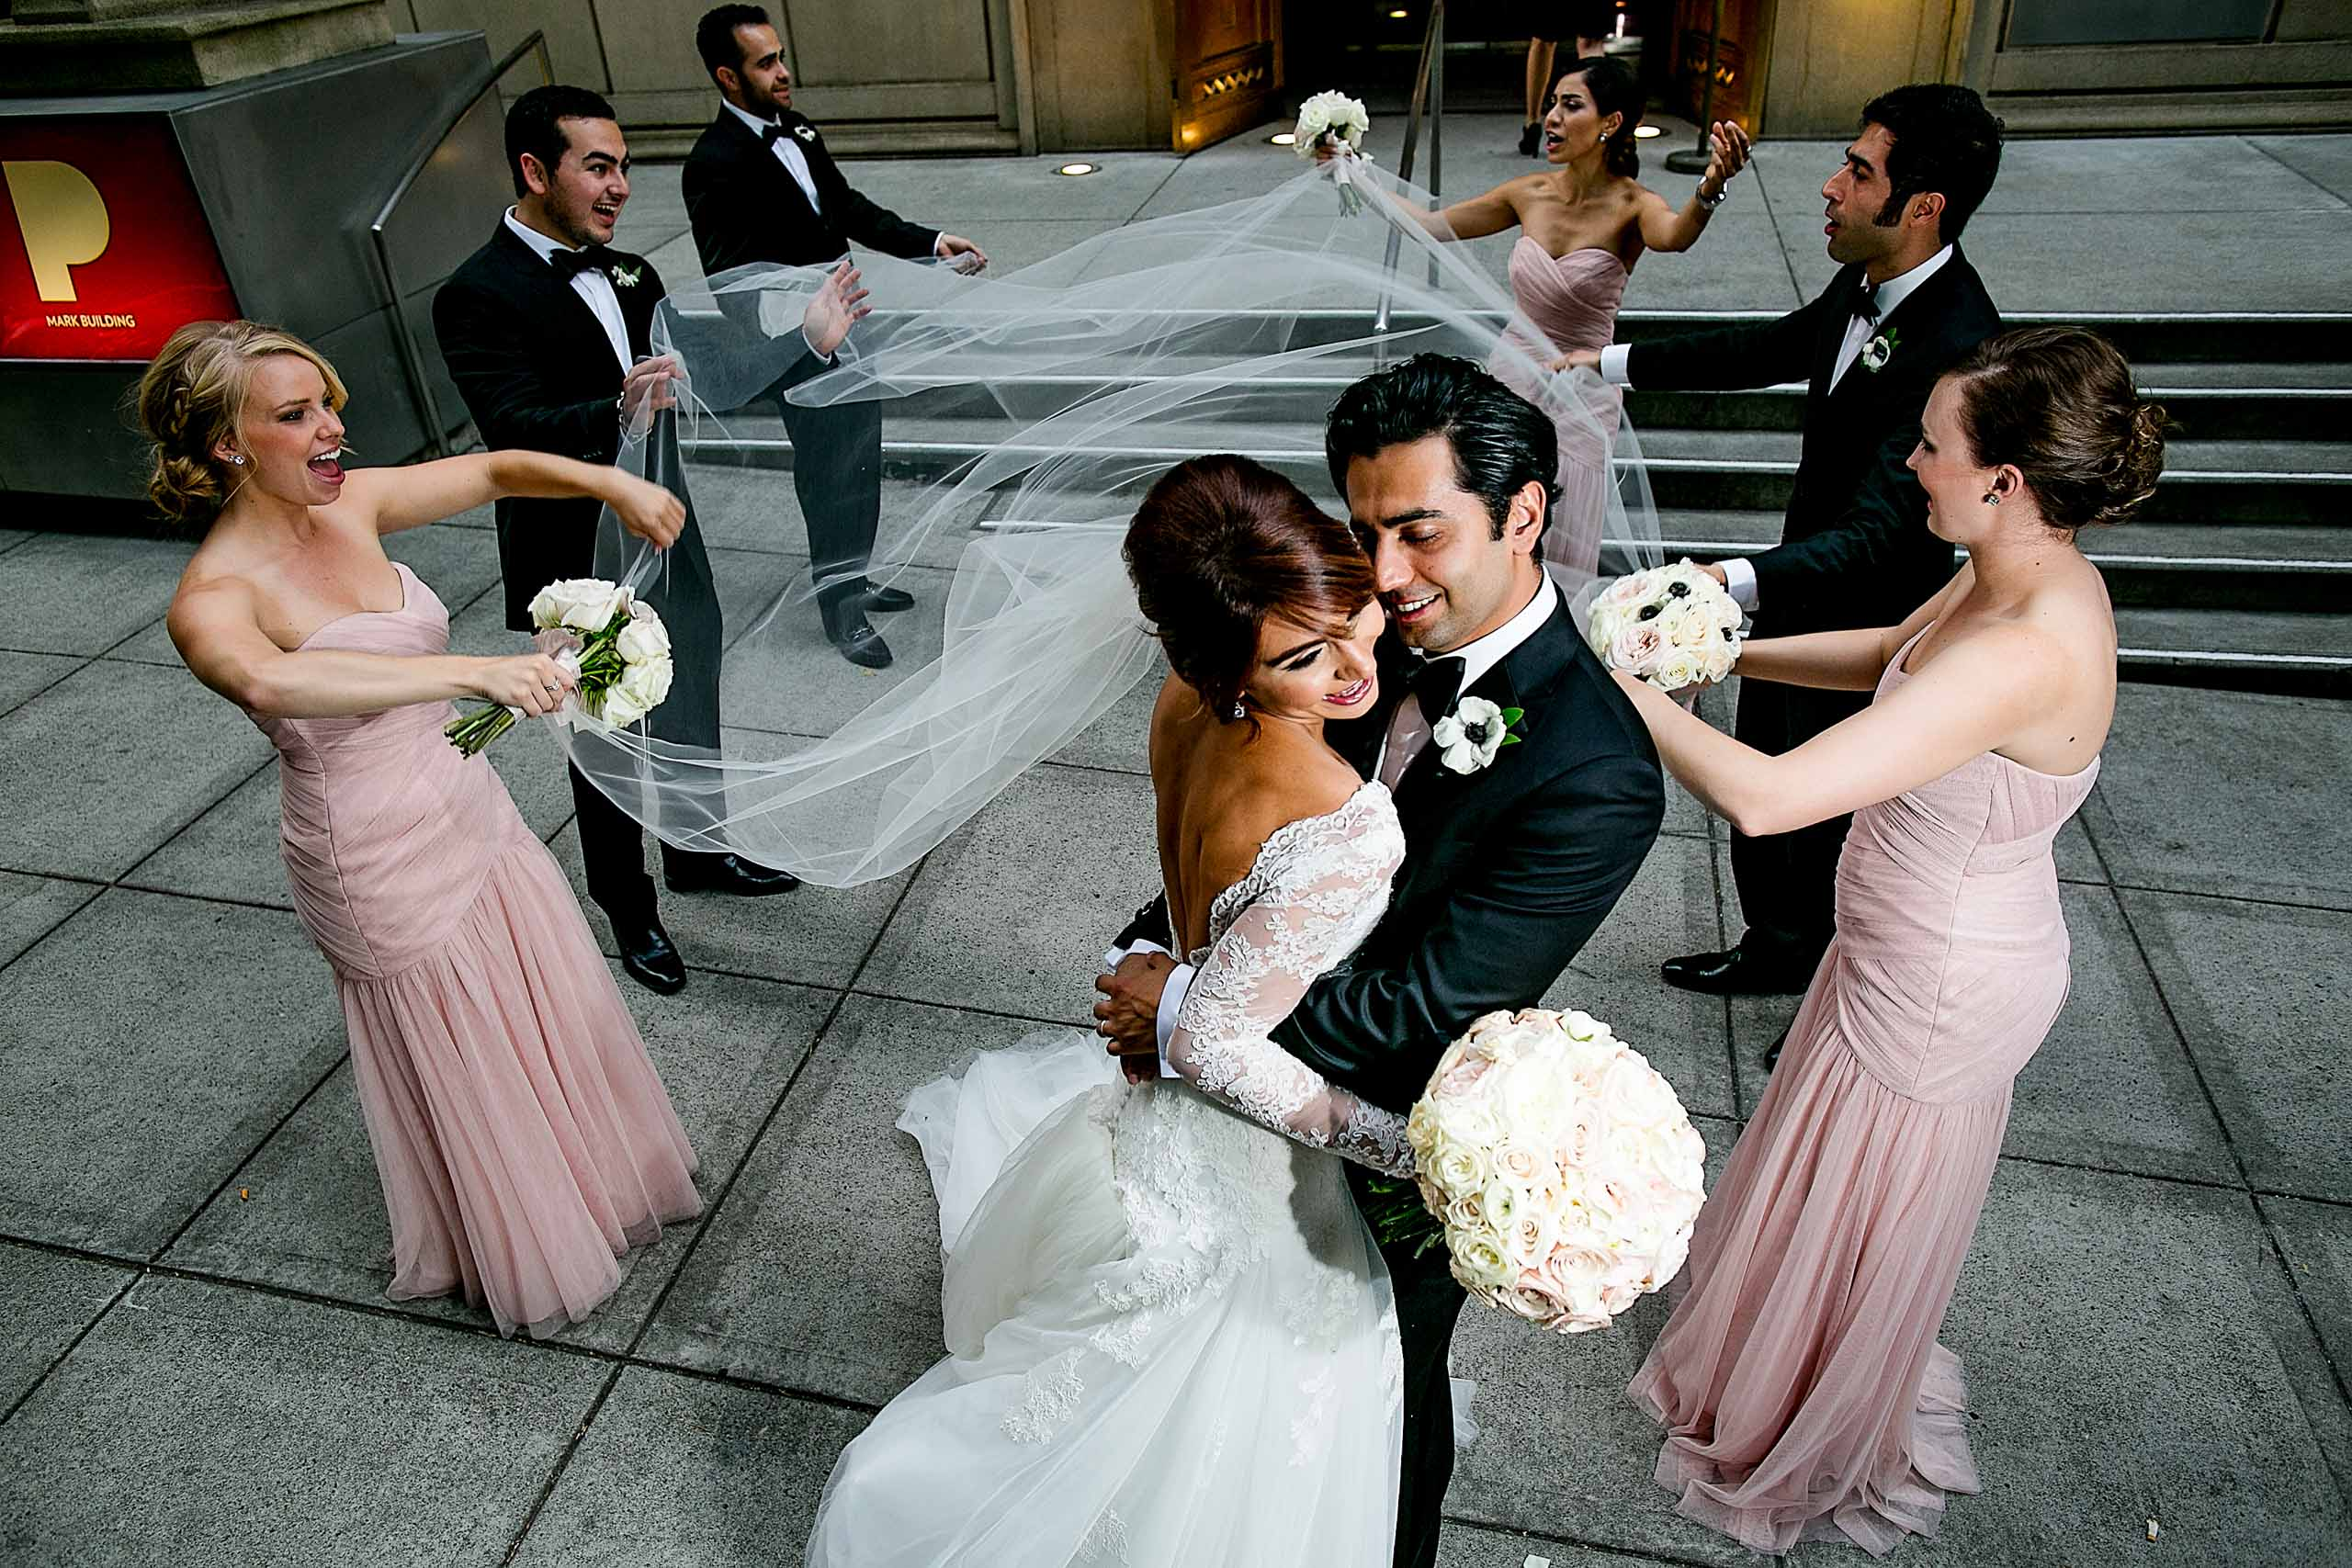 A groom and bride embracing each other while surrounded by best friends during their Portland Persian wedding at the Portland Art Museum